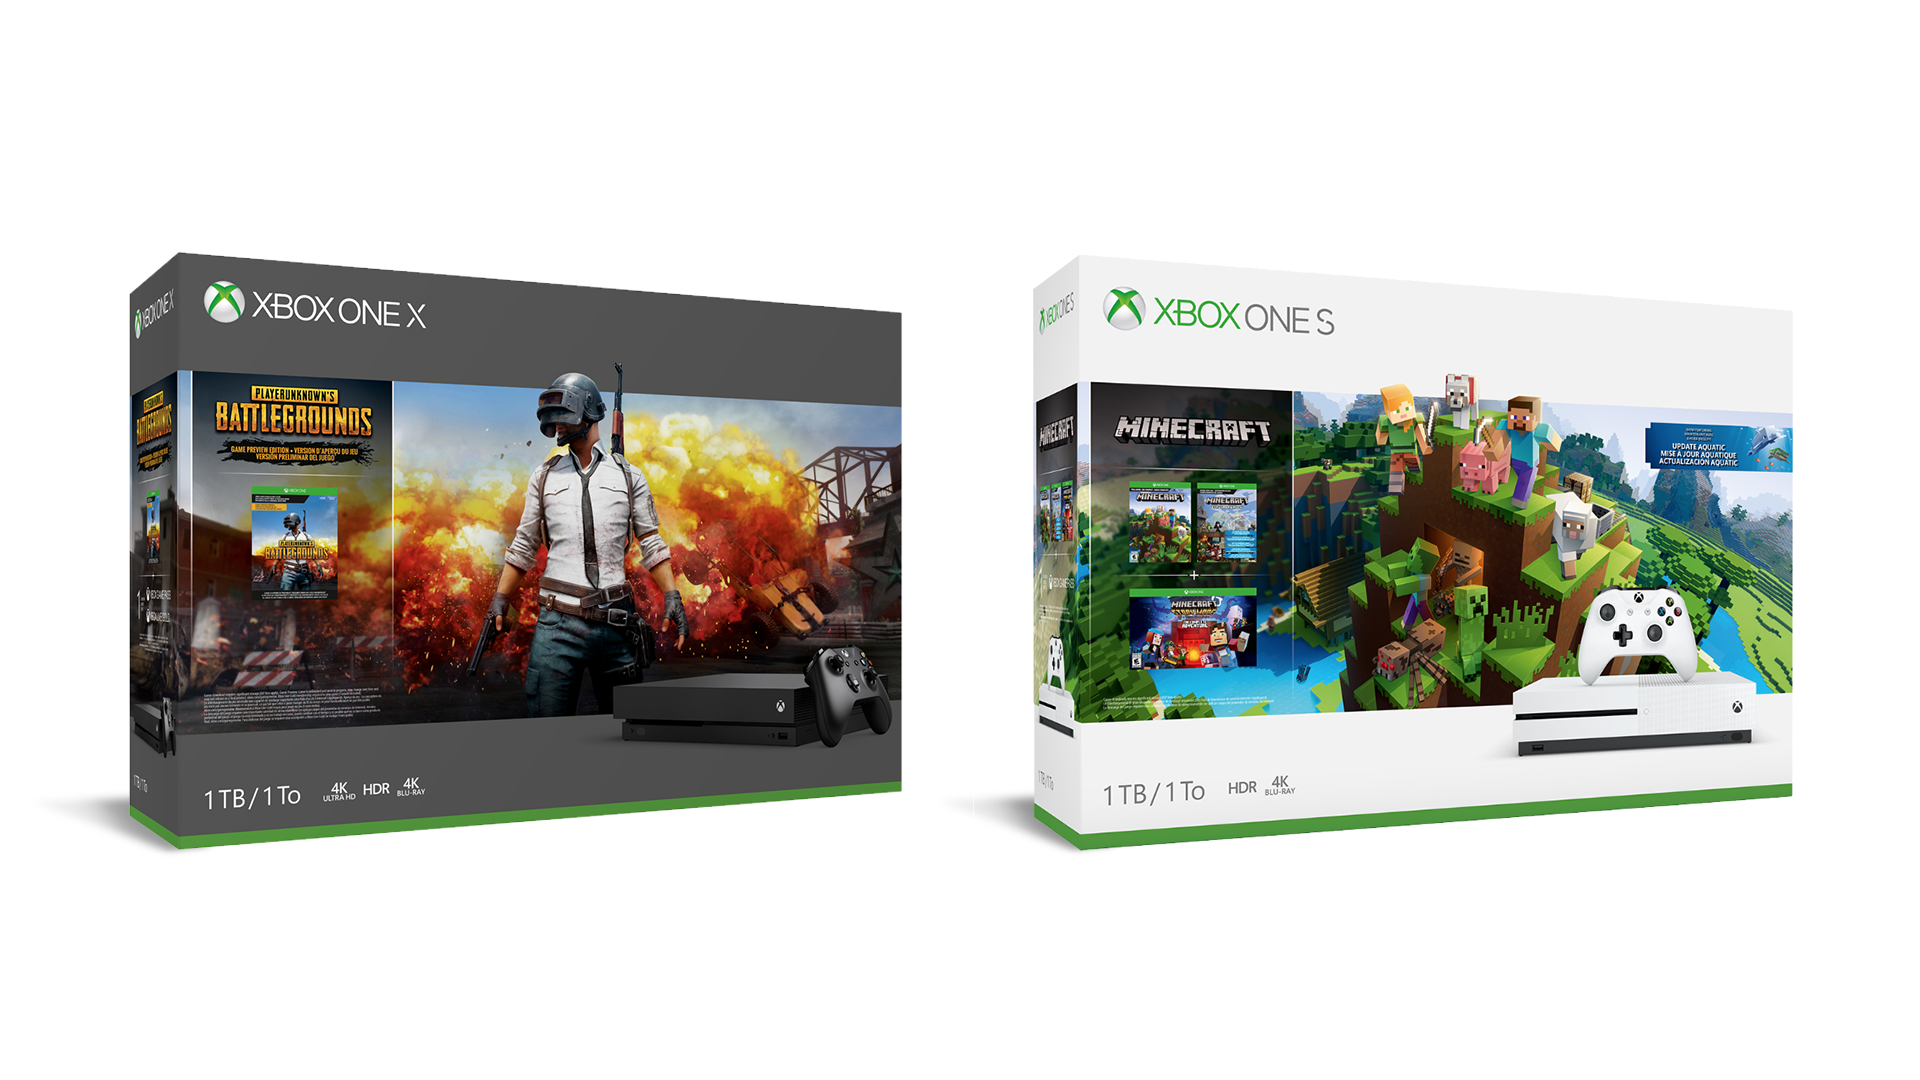 Microsoft Announces New Xbox One X PUBG Bundle & One S Minecraft